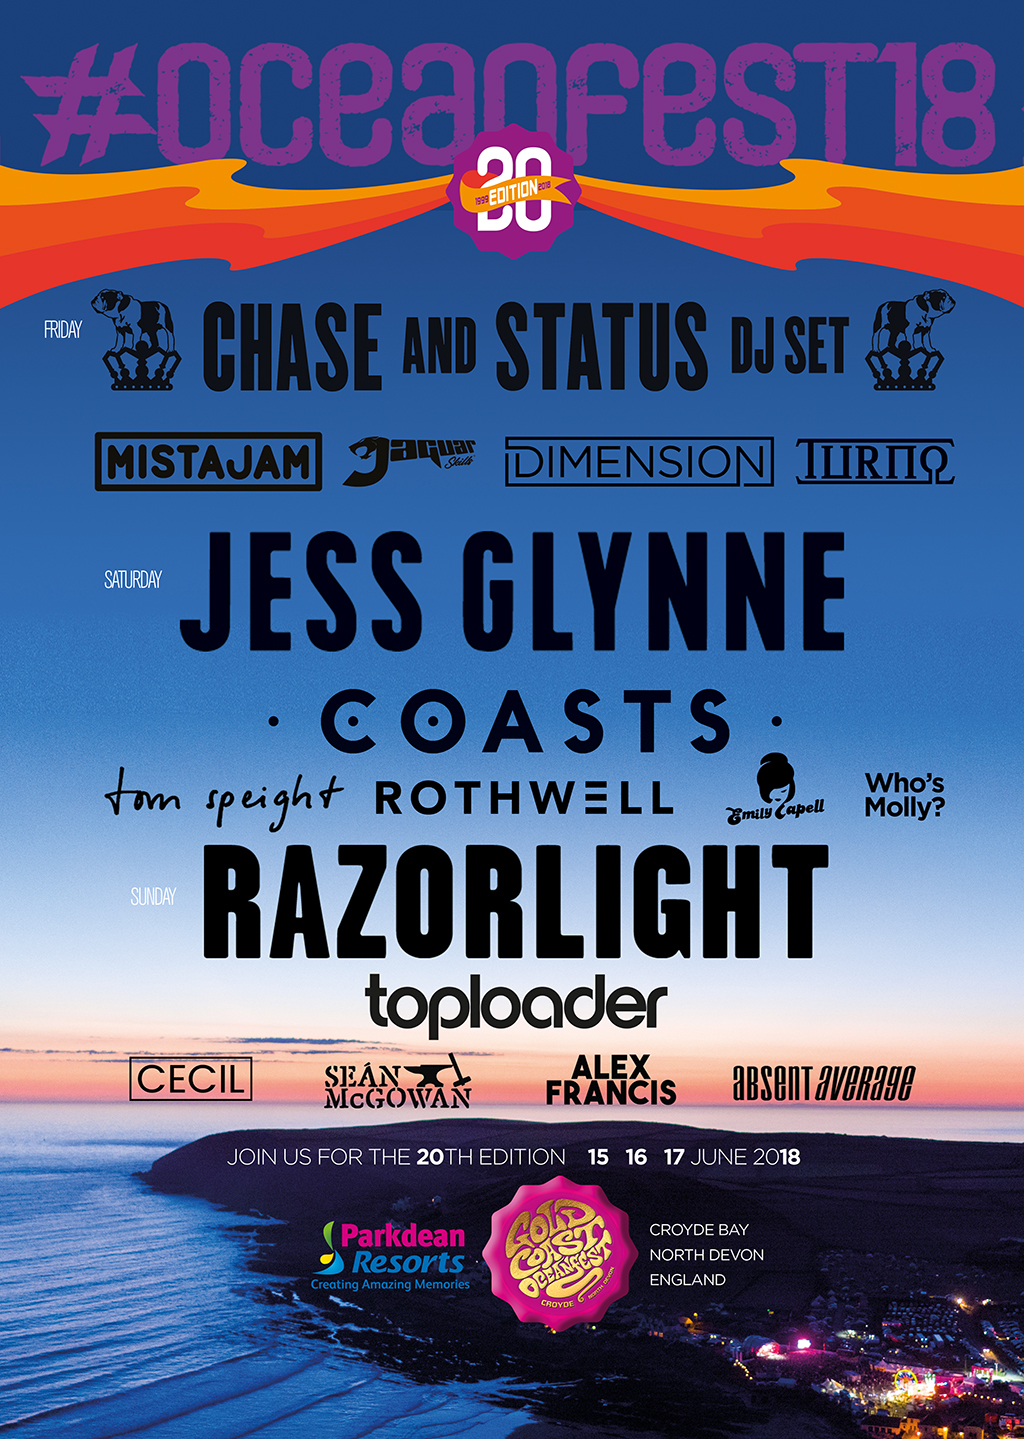 GoldCoast Oceanfest 2018 Official Poster